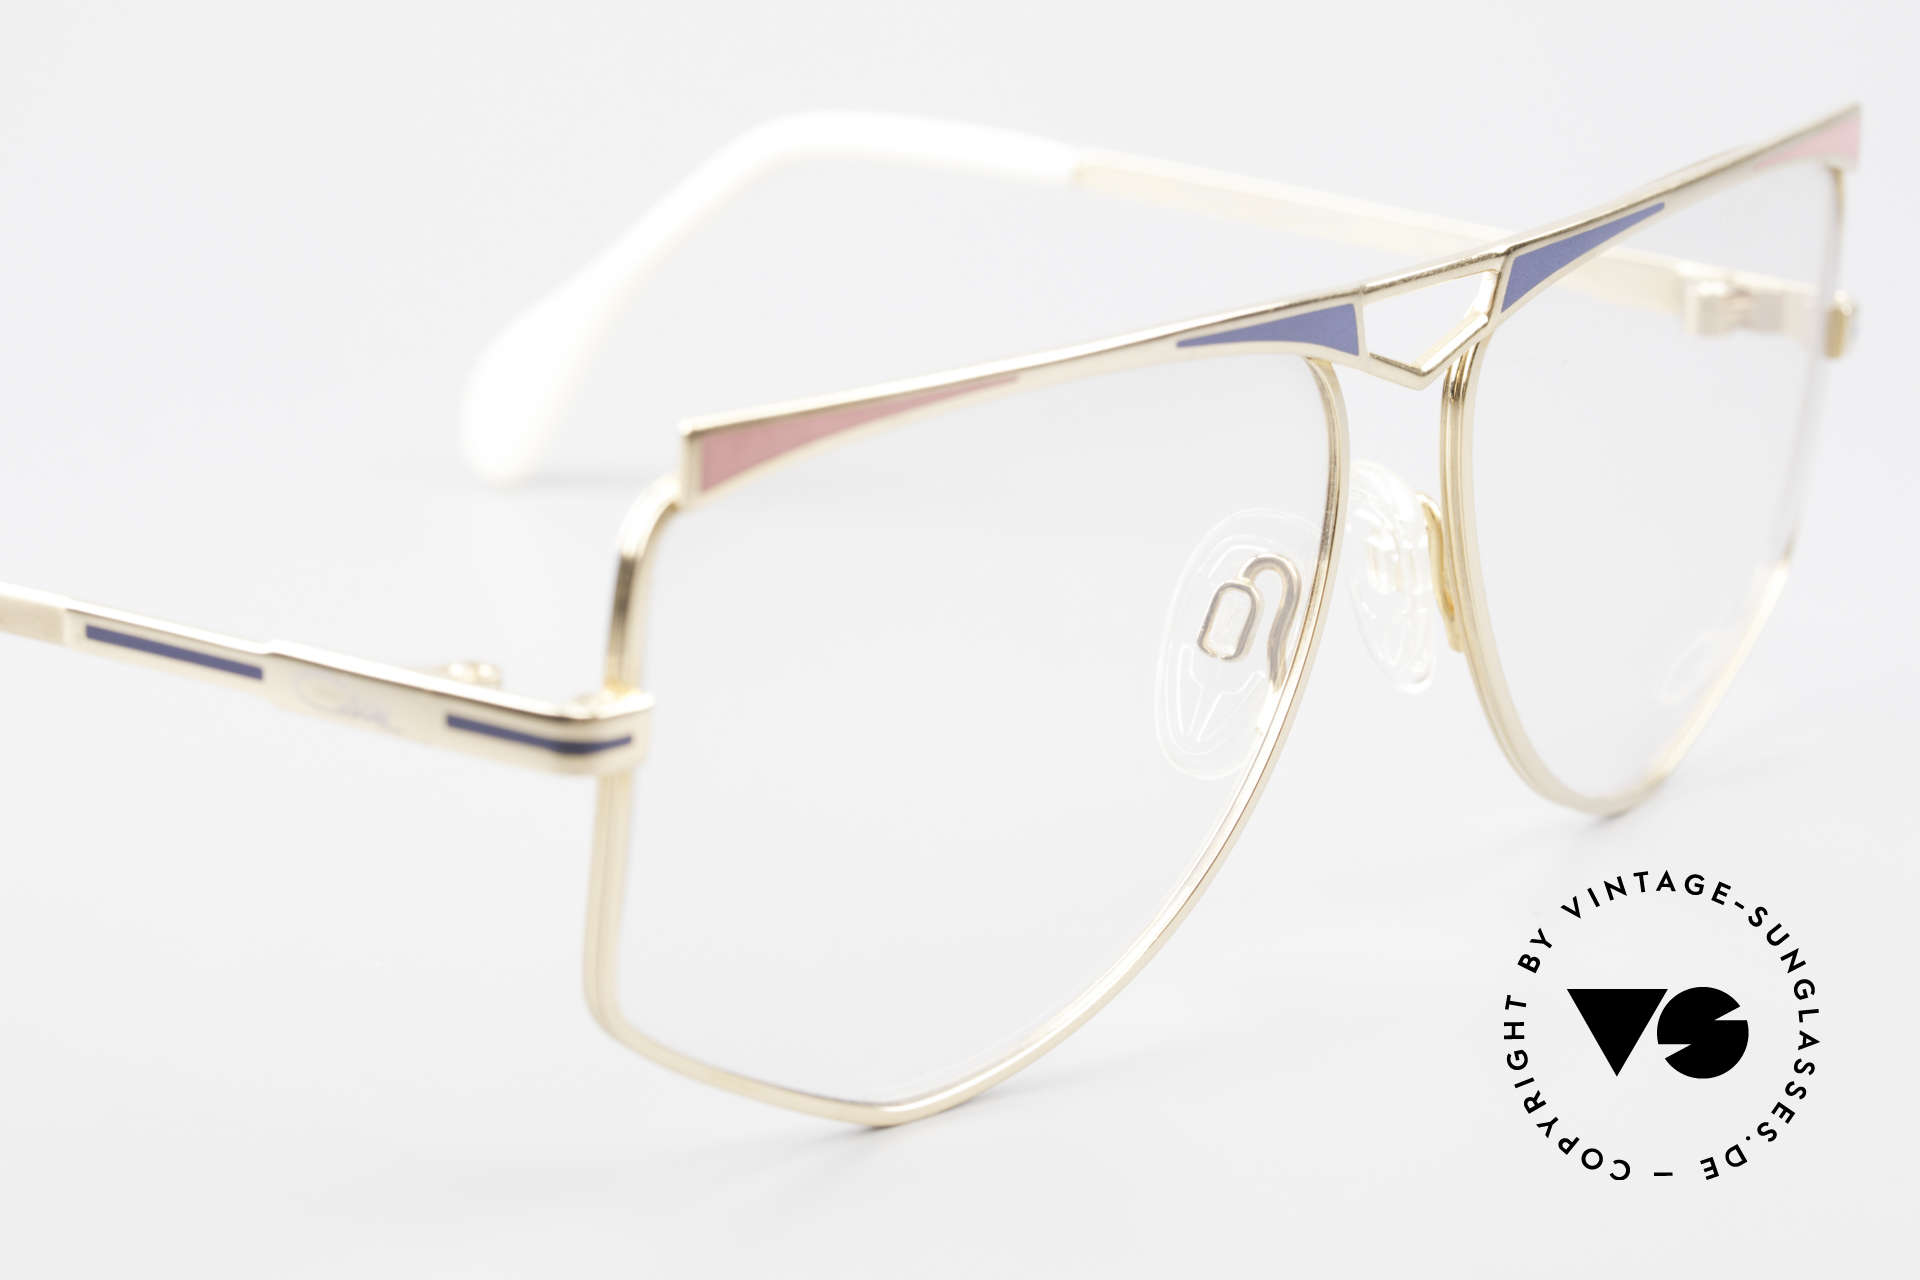 Cazal 227 True Old Vintage Eyeglasses, 1st class craftsmanship (frame made in West Germany), Made for Women